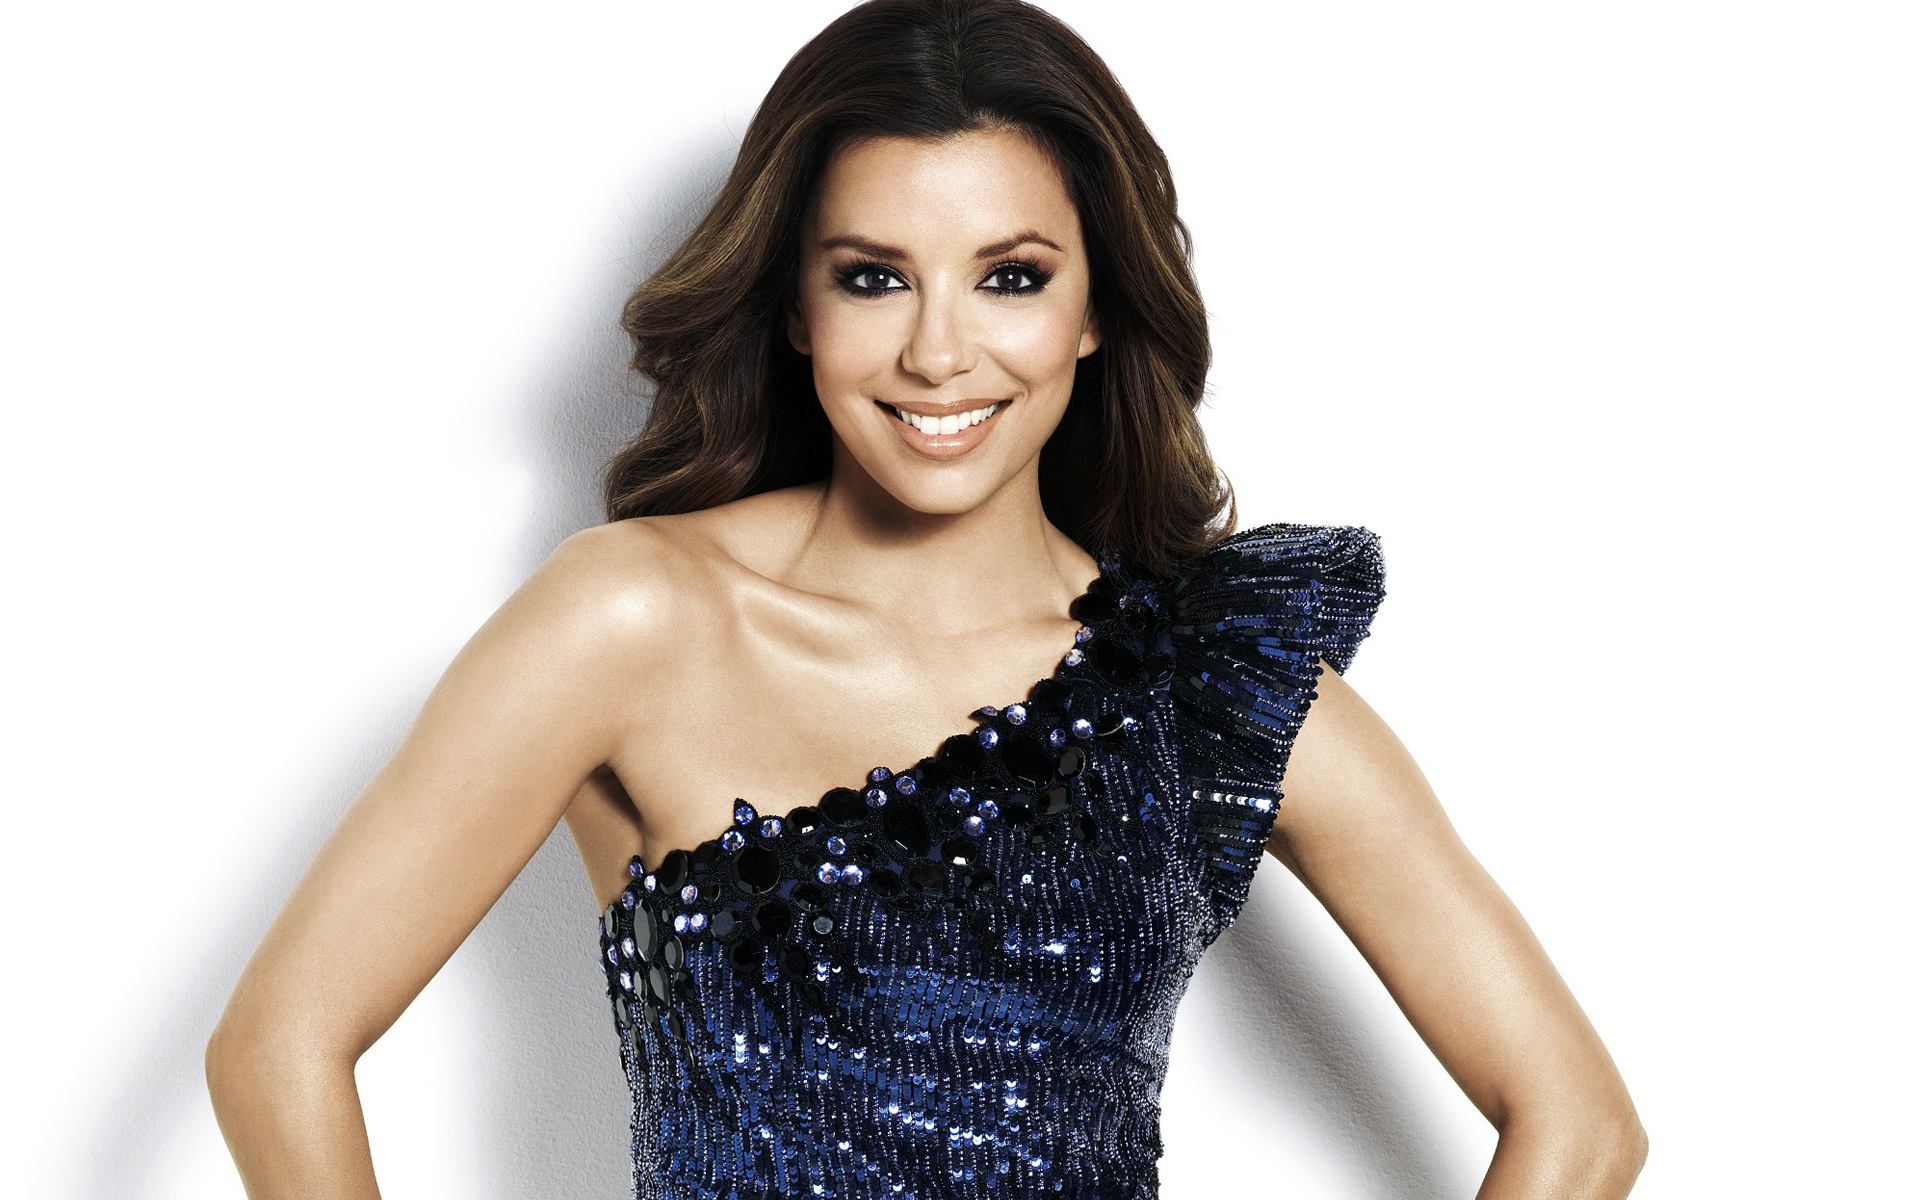 Stylish Eva Longoria Beautiful Smile Face Look Laptop Free Download Images Background Hd